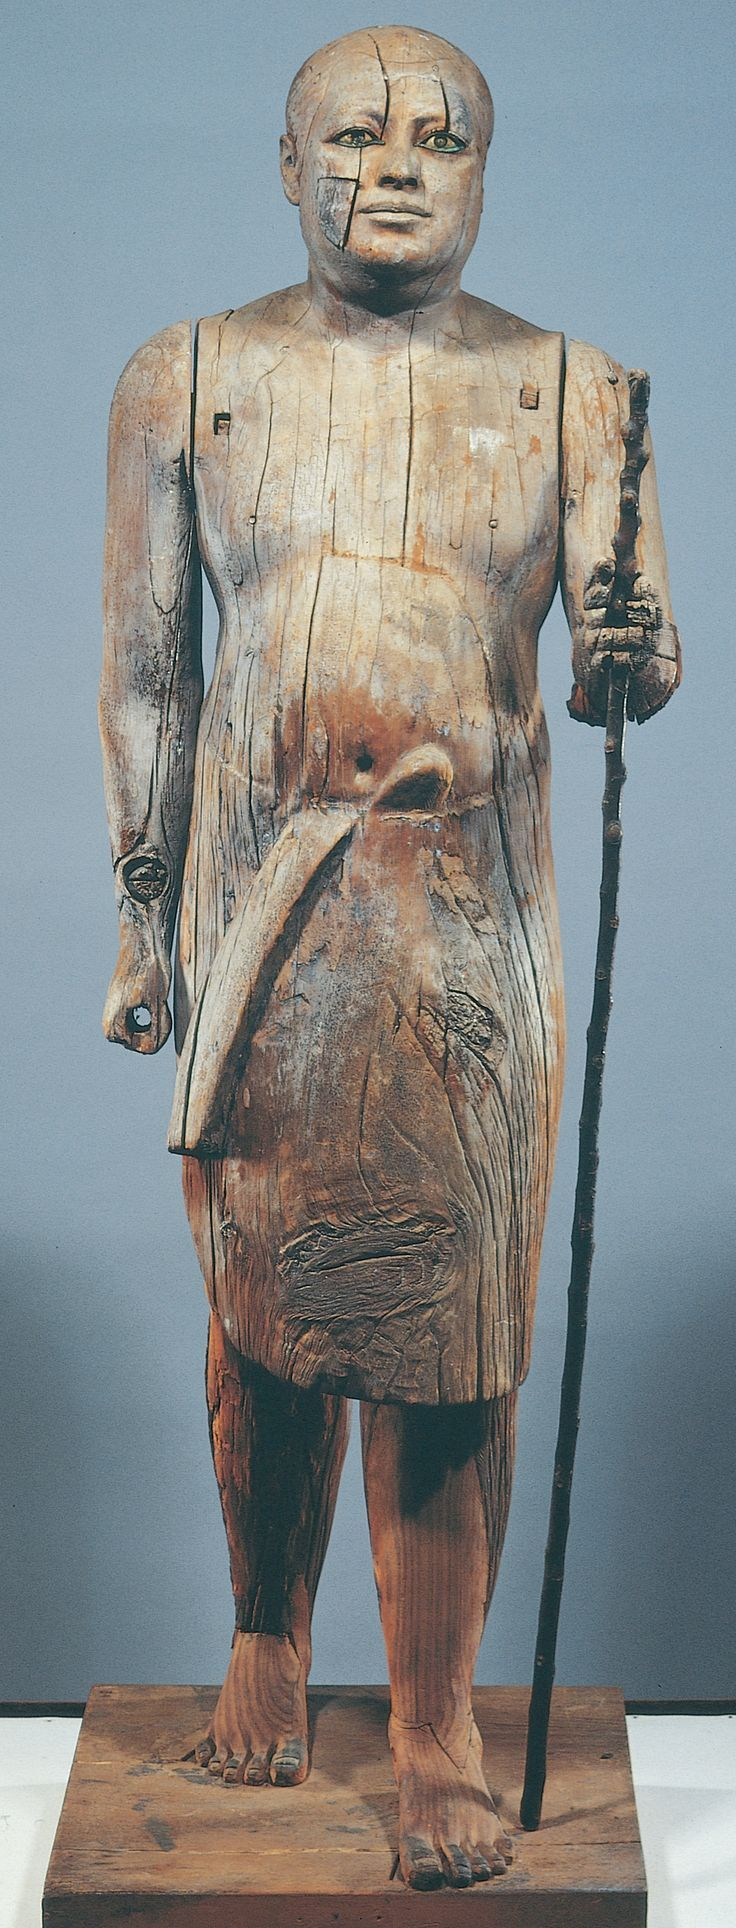 "Statue of ""Sheikh el-Balad"" Representing ""Ka-aper""- EGYPTIAN MUSEUM, CAIRO, EGYPT. ""Sheikh el-Balad"", Arabic title for the chief of the village, was the name given to this remarkable wooden statue discovered by the workmen of ""Auguste Mariette"", the French archaeologist, because it resembled their own village chief."